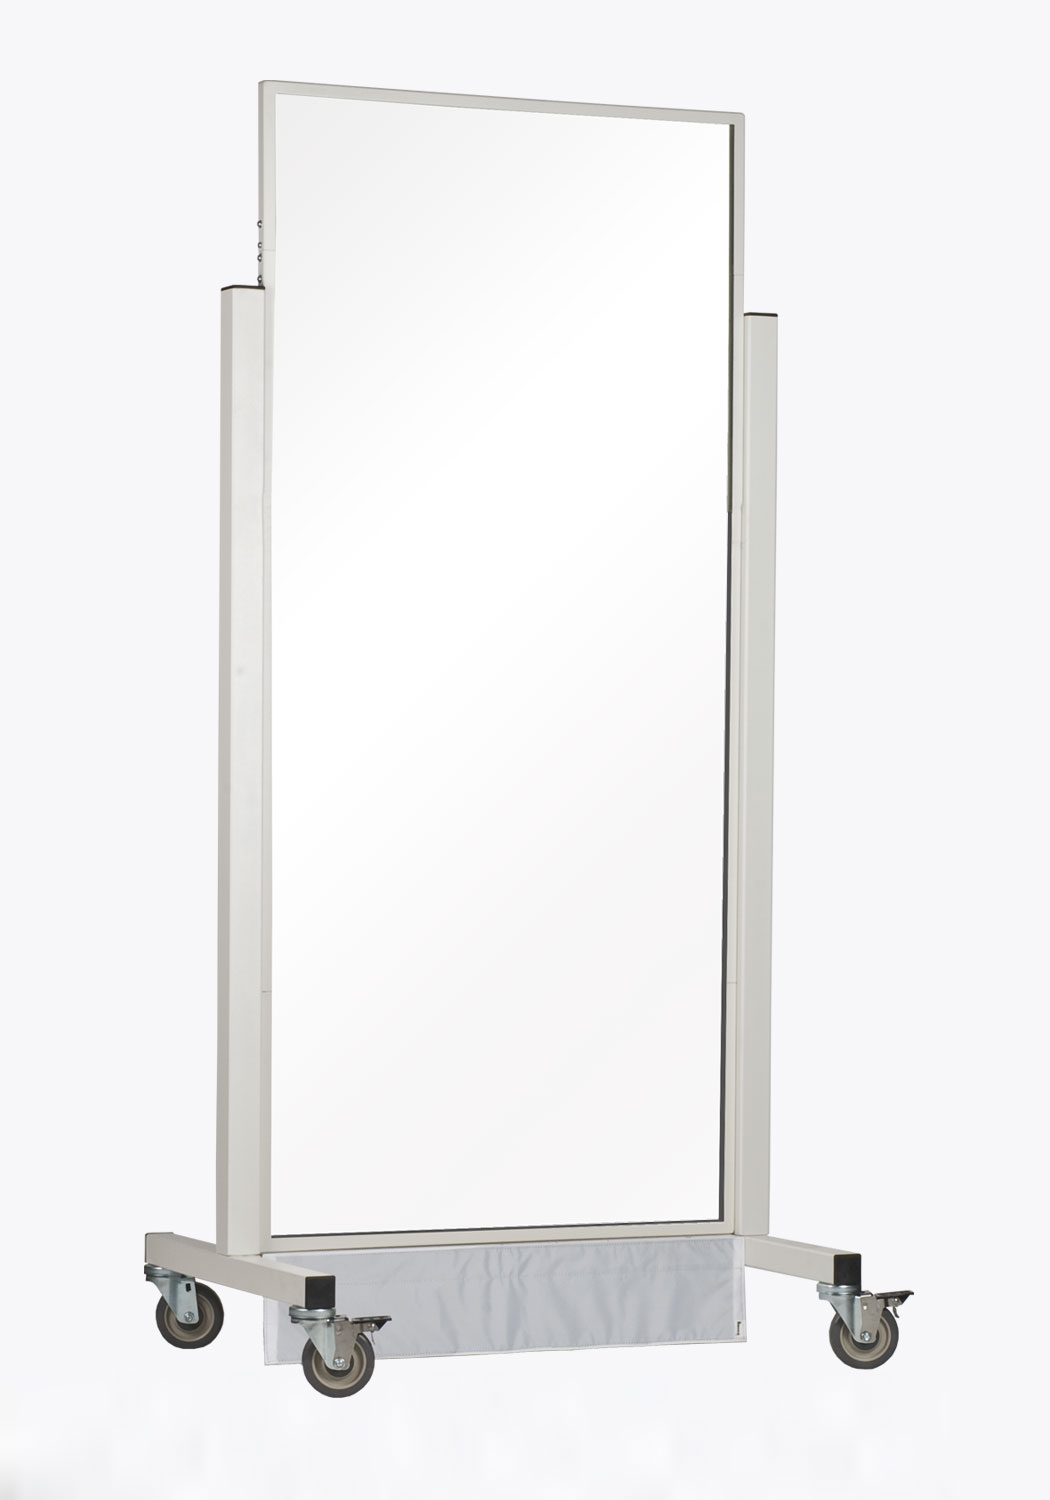 Large Window X-ray Mobile Barrier – 683492